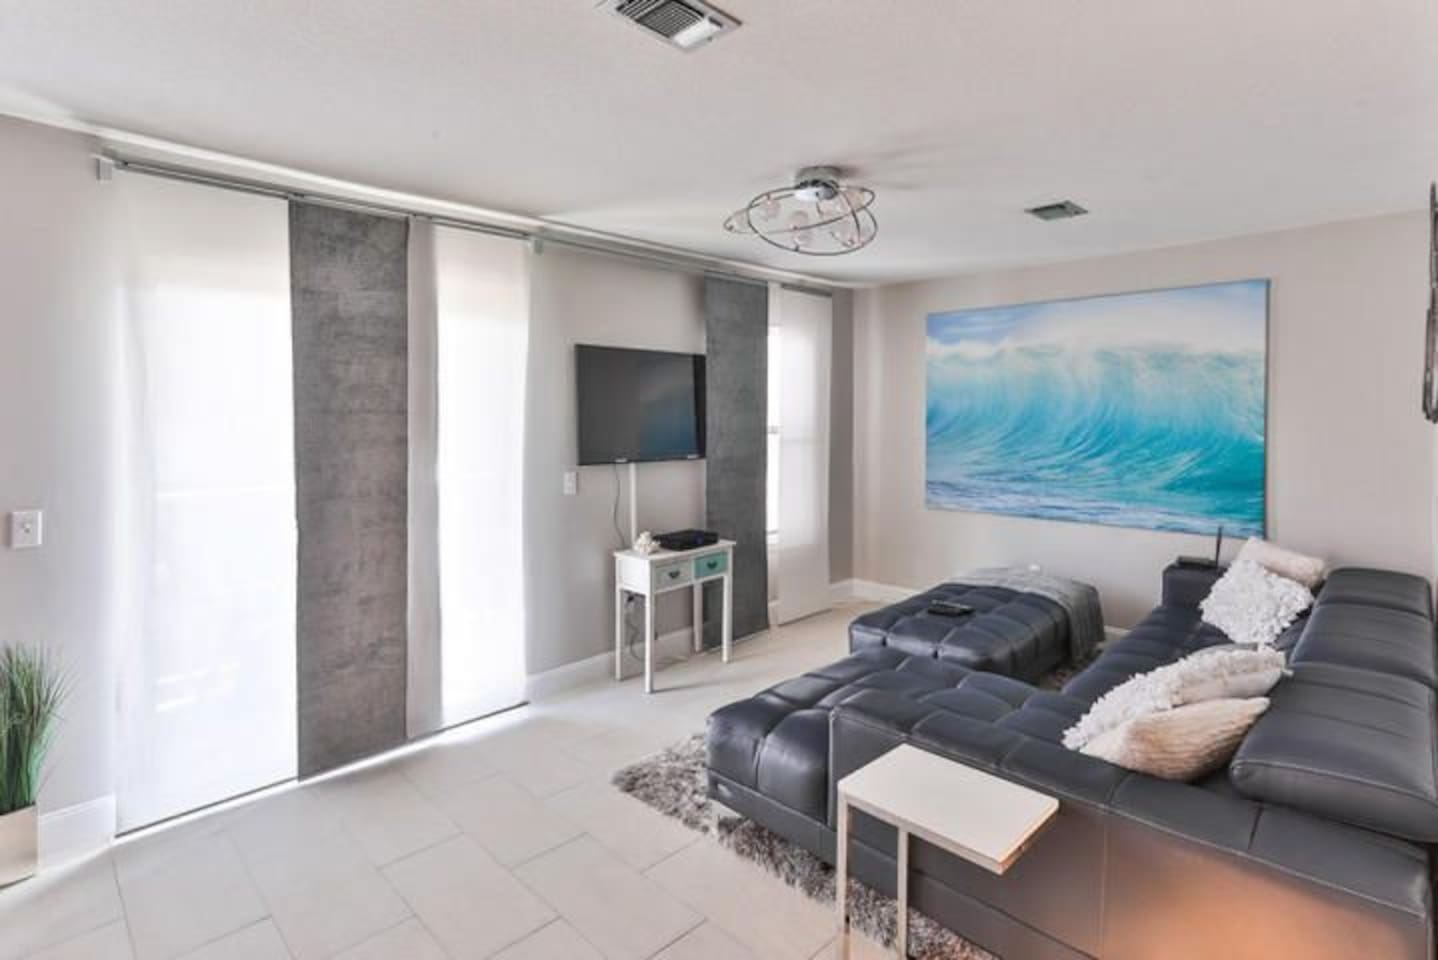 Modern style living room with balcony view of the water